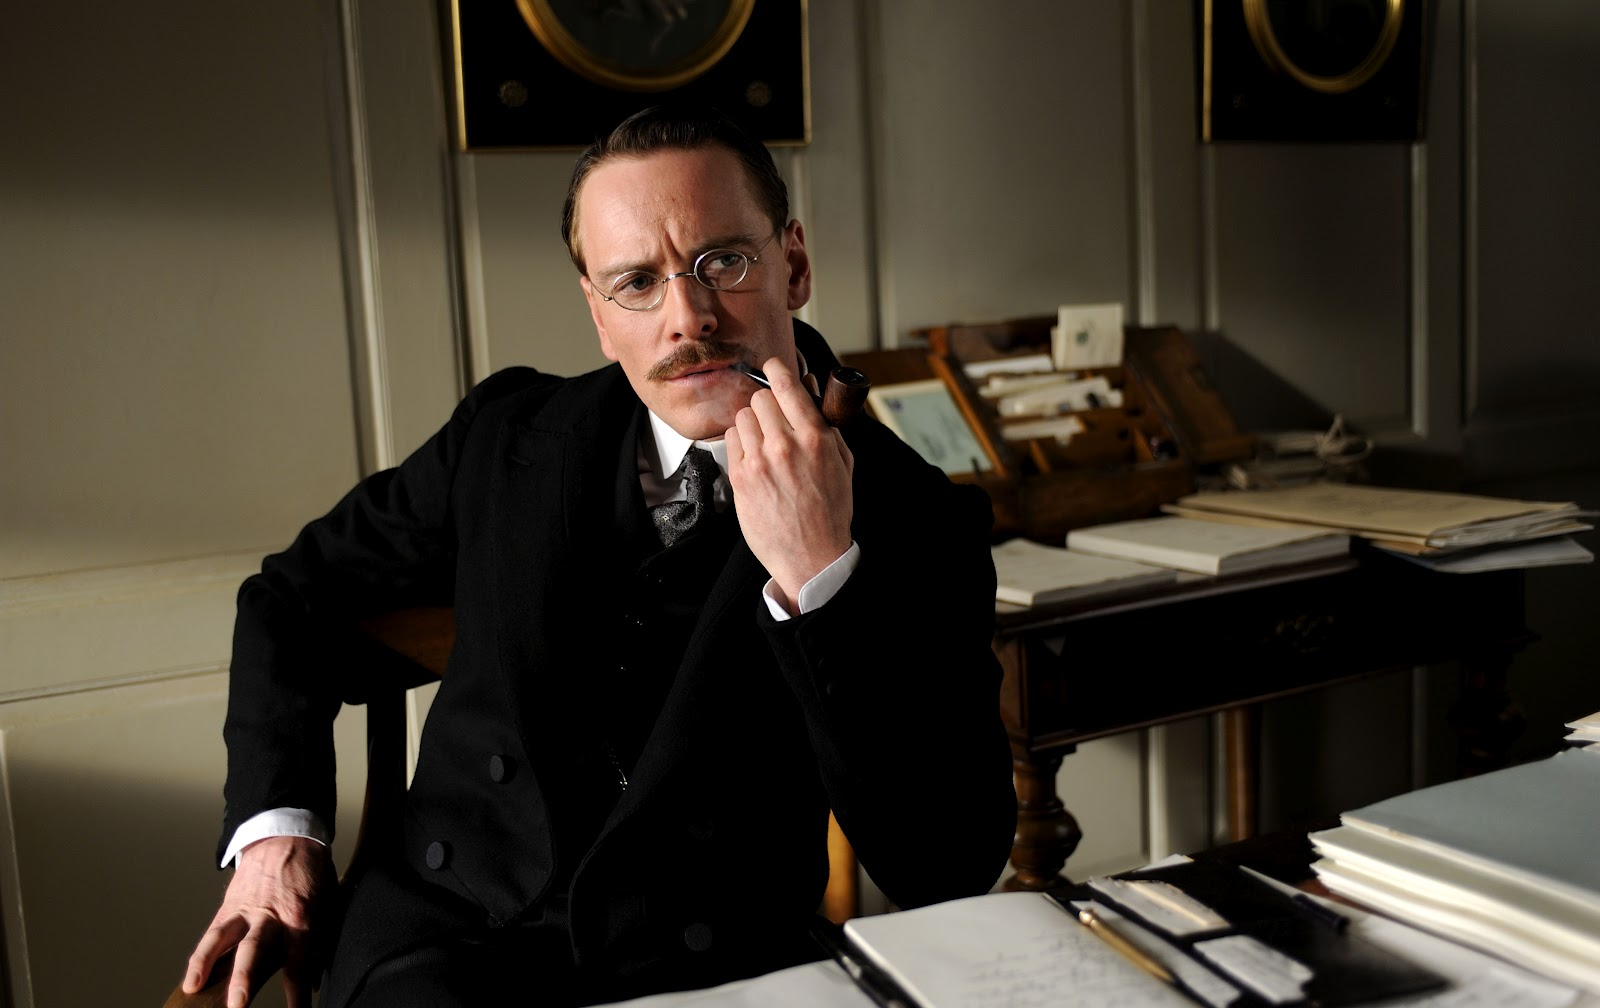 At Darren's World of Entertainment: A Dangerous Method ... A Dangerous Method